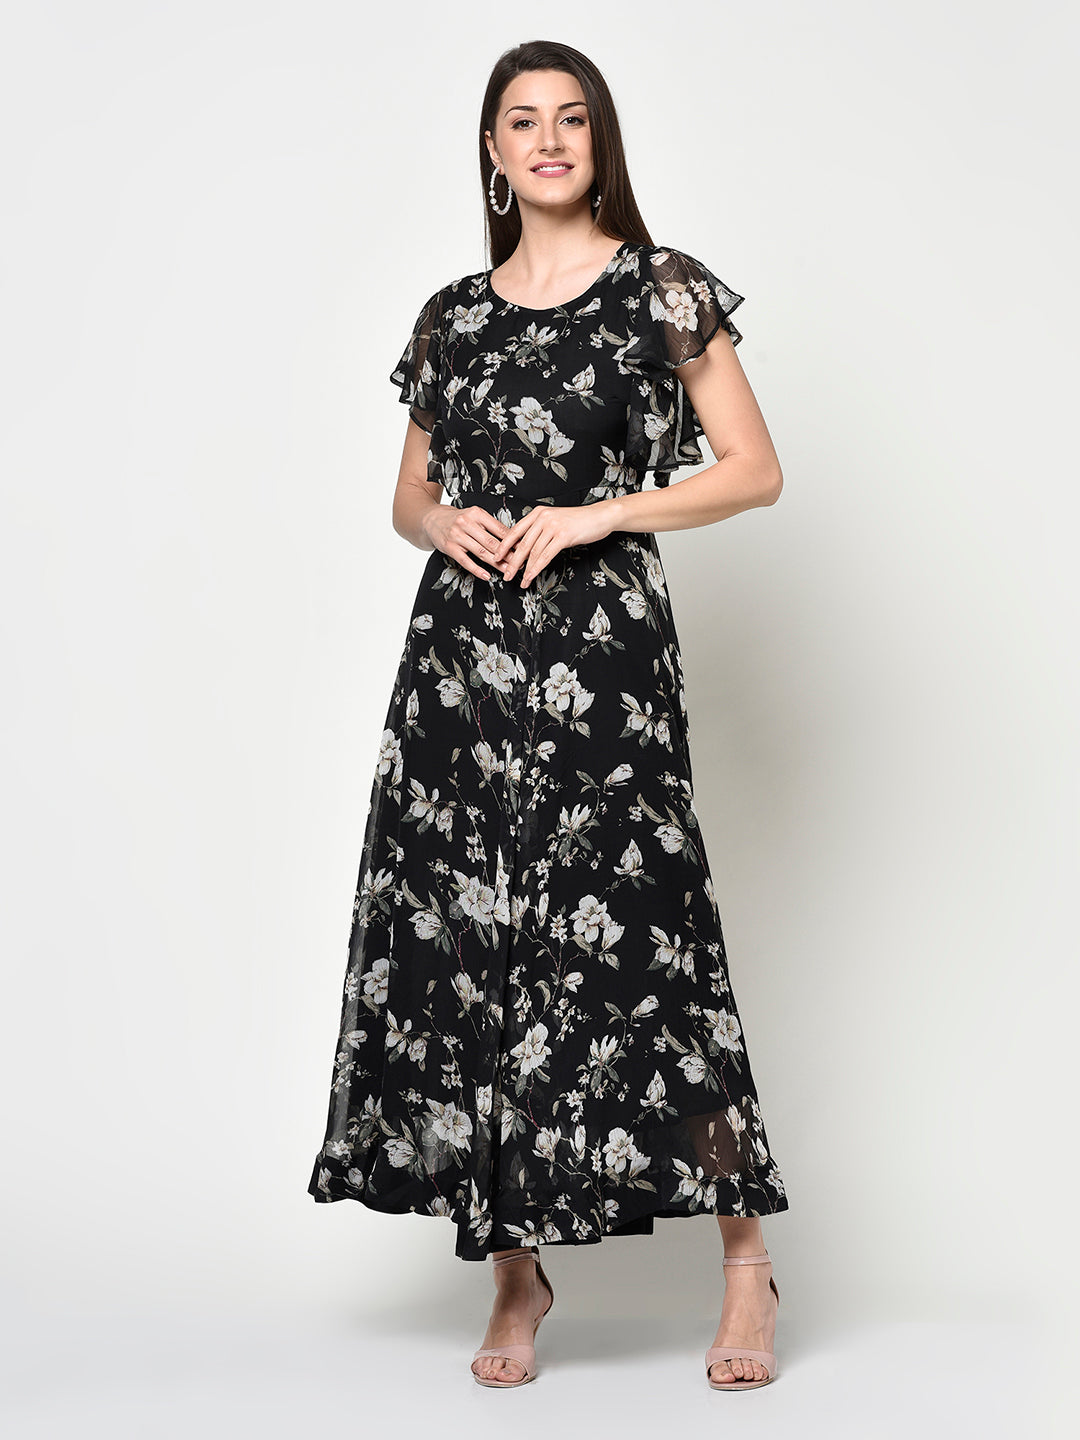 Black Floral Lined Ladies Long Dress - Avsoy